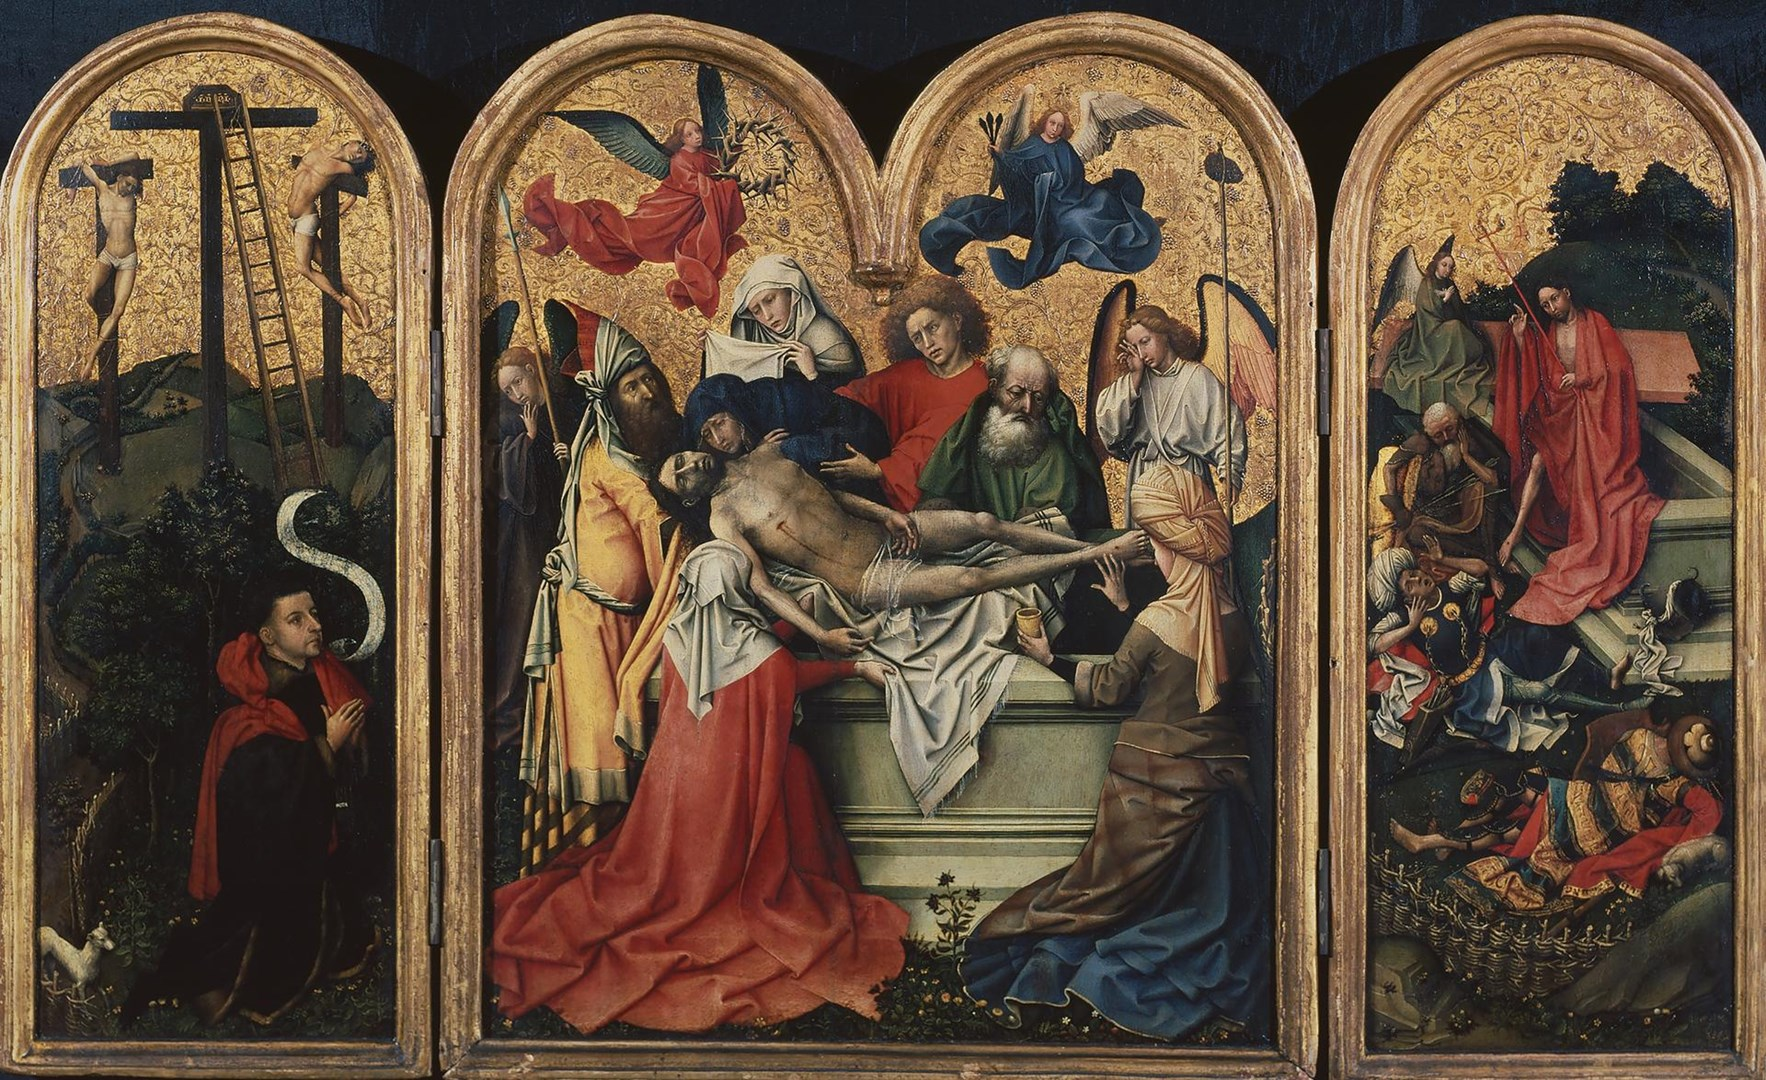 The Entombment (The Seilern Triptych) by Robert Campin